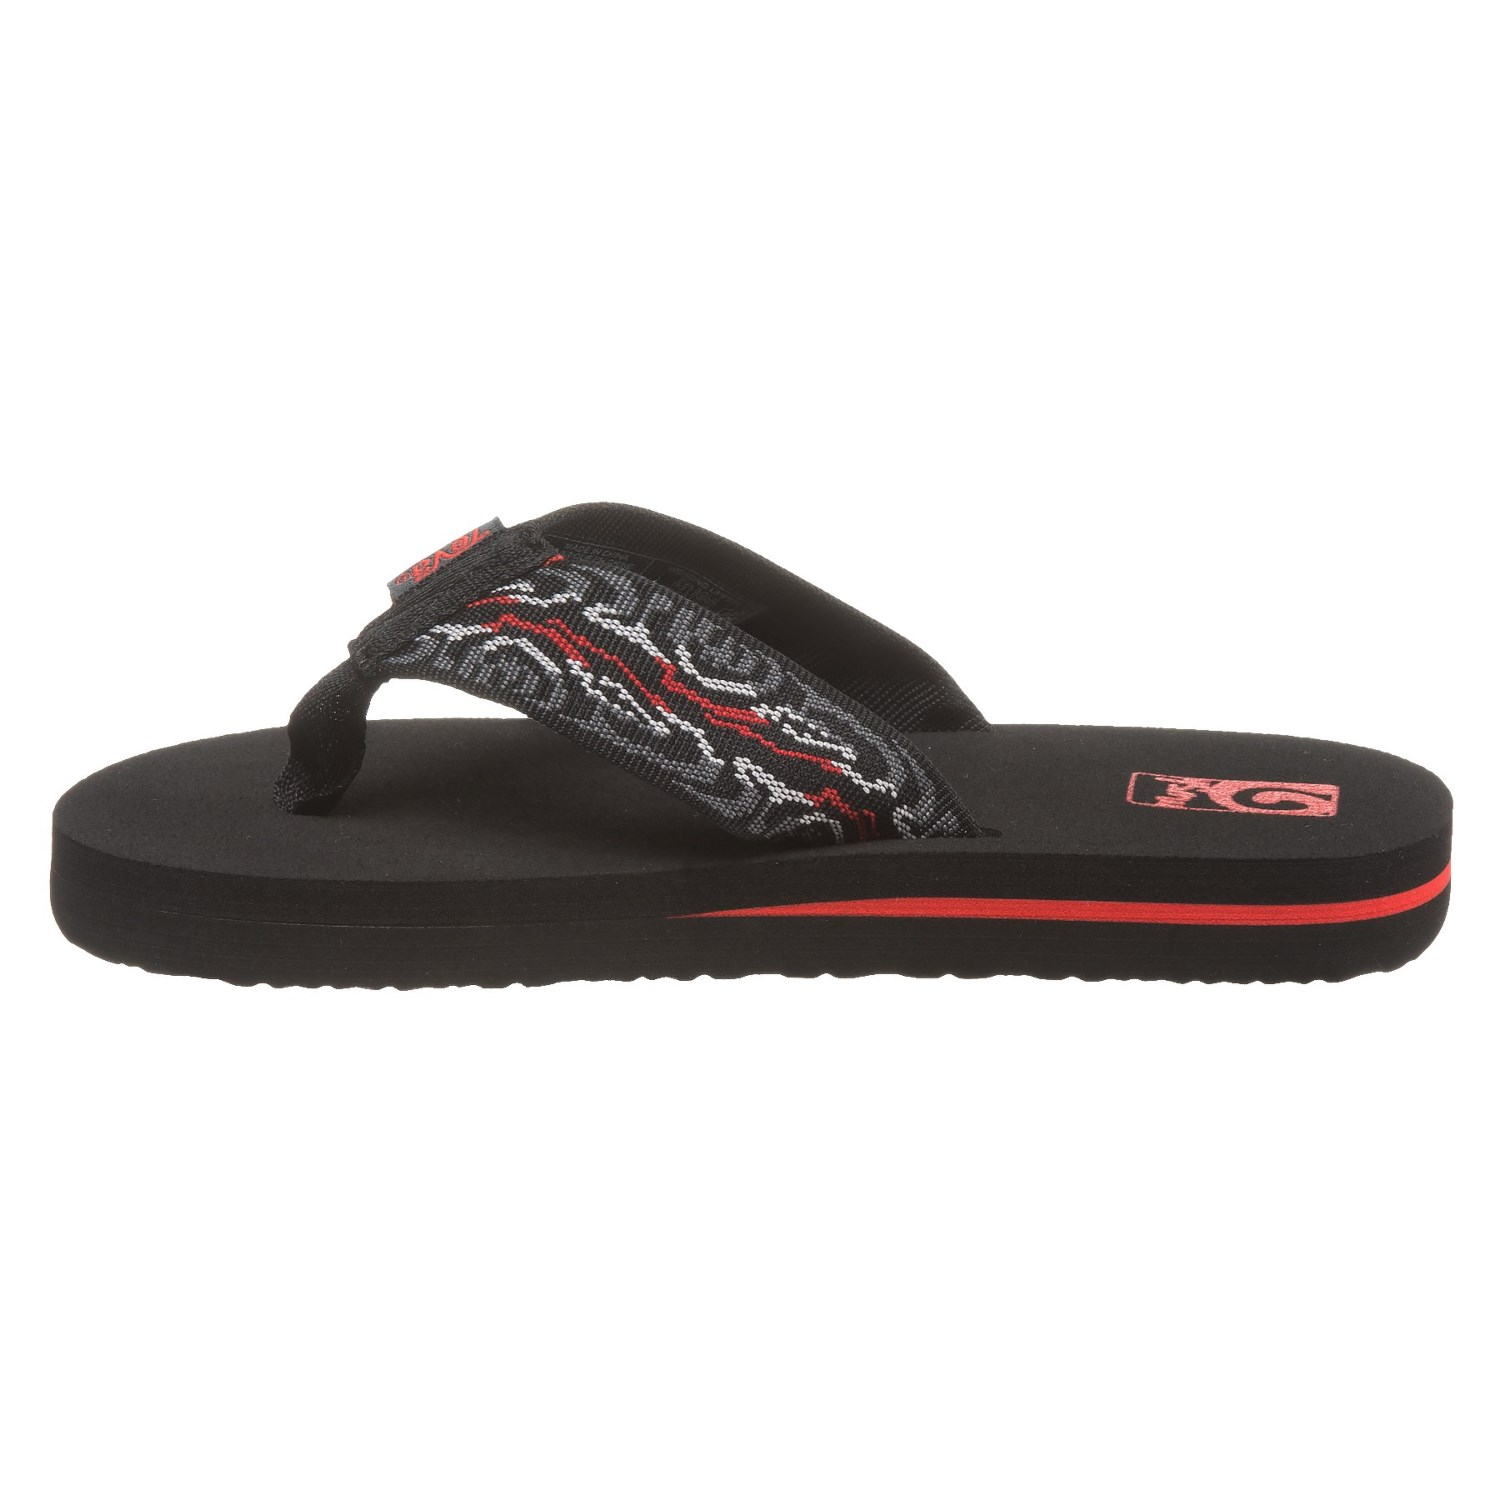 7612d7231d740e Teva Mush® II Flip-Flops (For Boys) - Save 35%